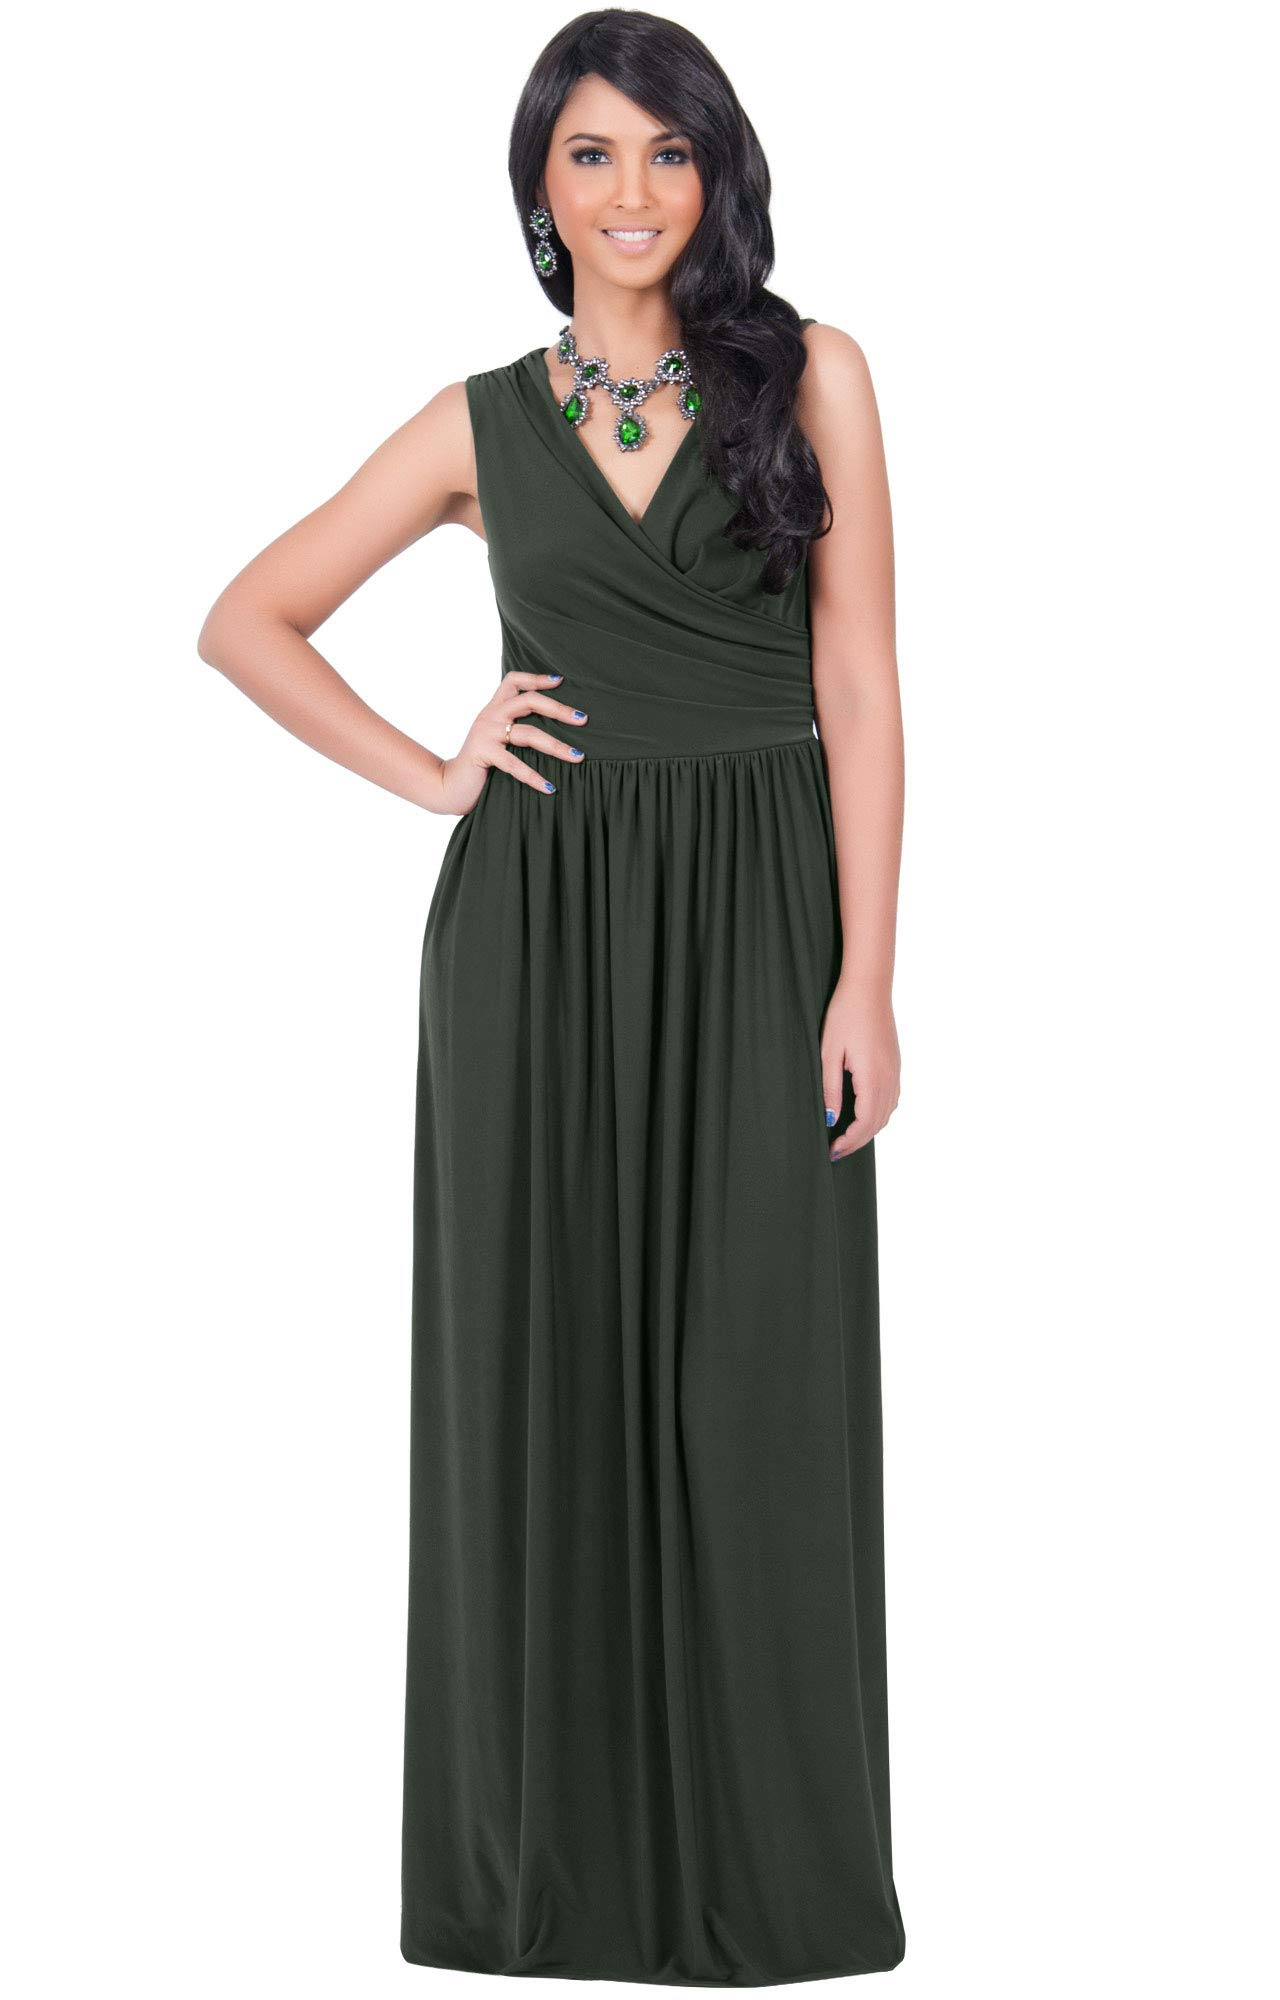 Koh Koh Womens Long Sleeveless Sexy Summer Semi Formal Bridesmaid Wedding Guest Evening Sundress Sundresses Flowy Gown Gowns Maxi Dress Dresses Olive